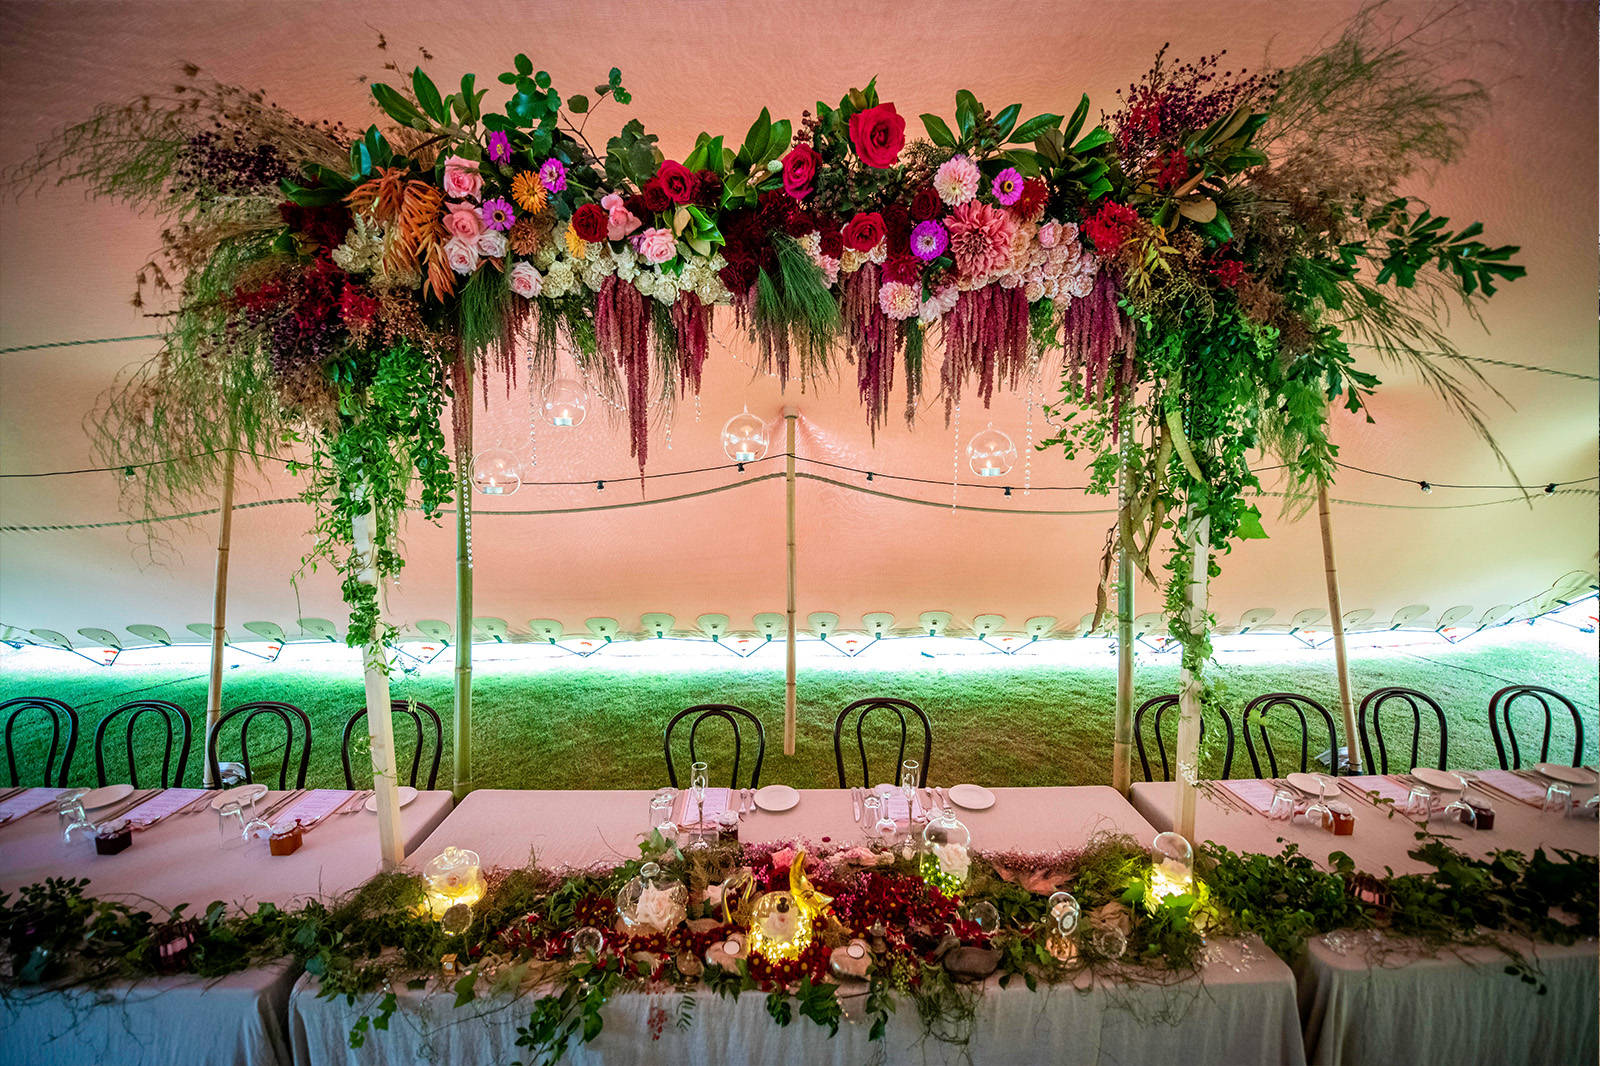 BOS_tents_events_styling3.jpg